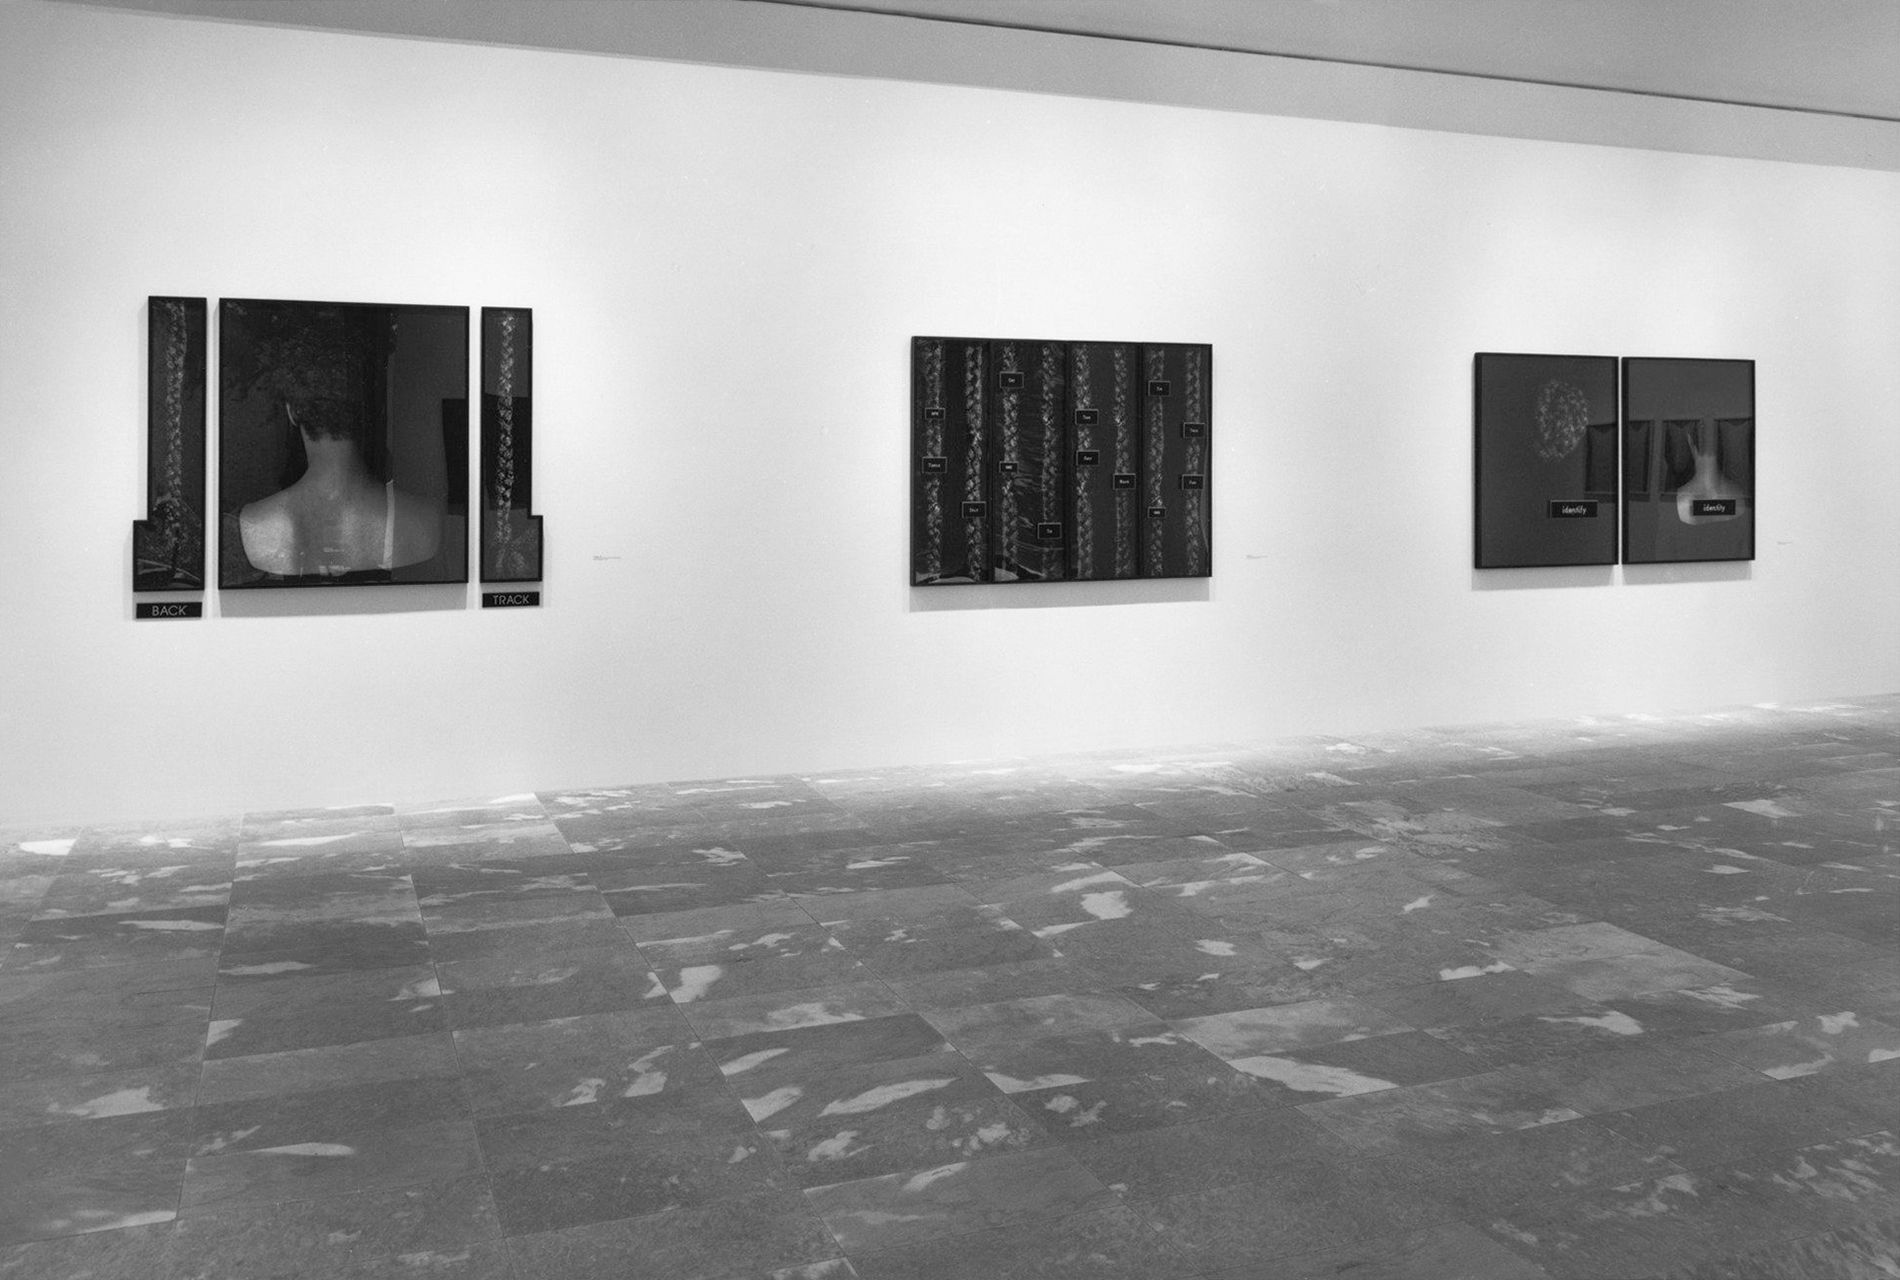 Lorna Simpson: Projects 23